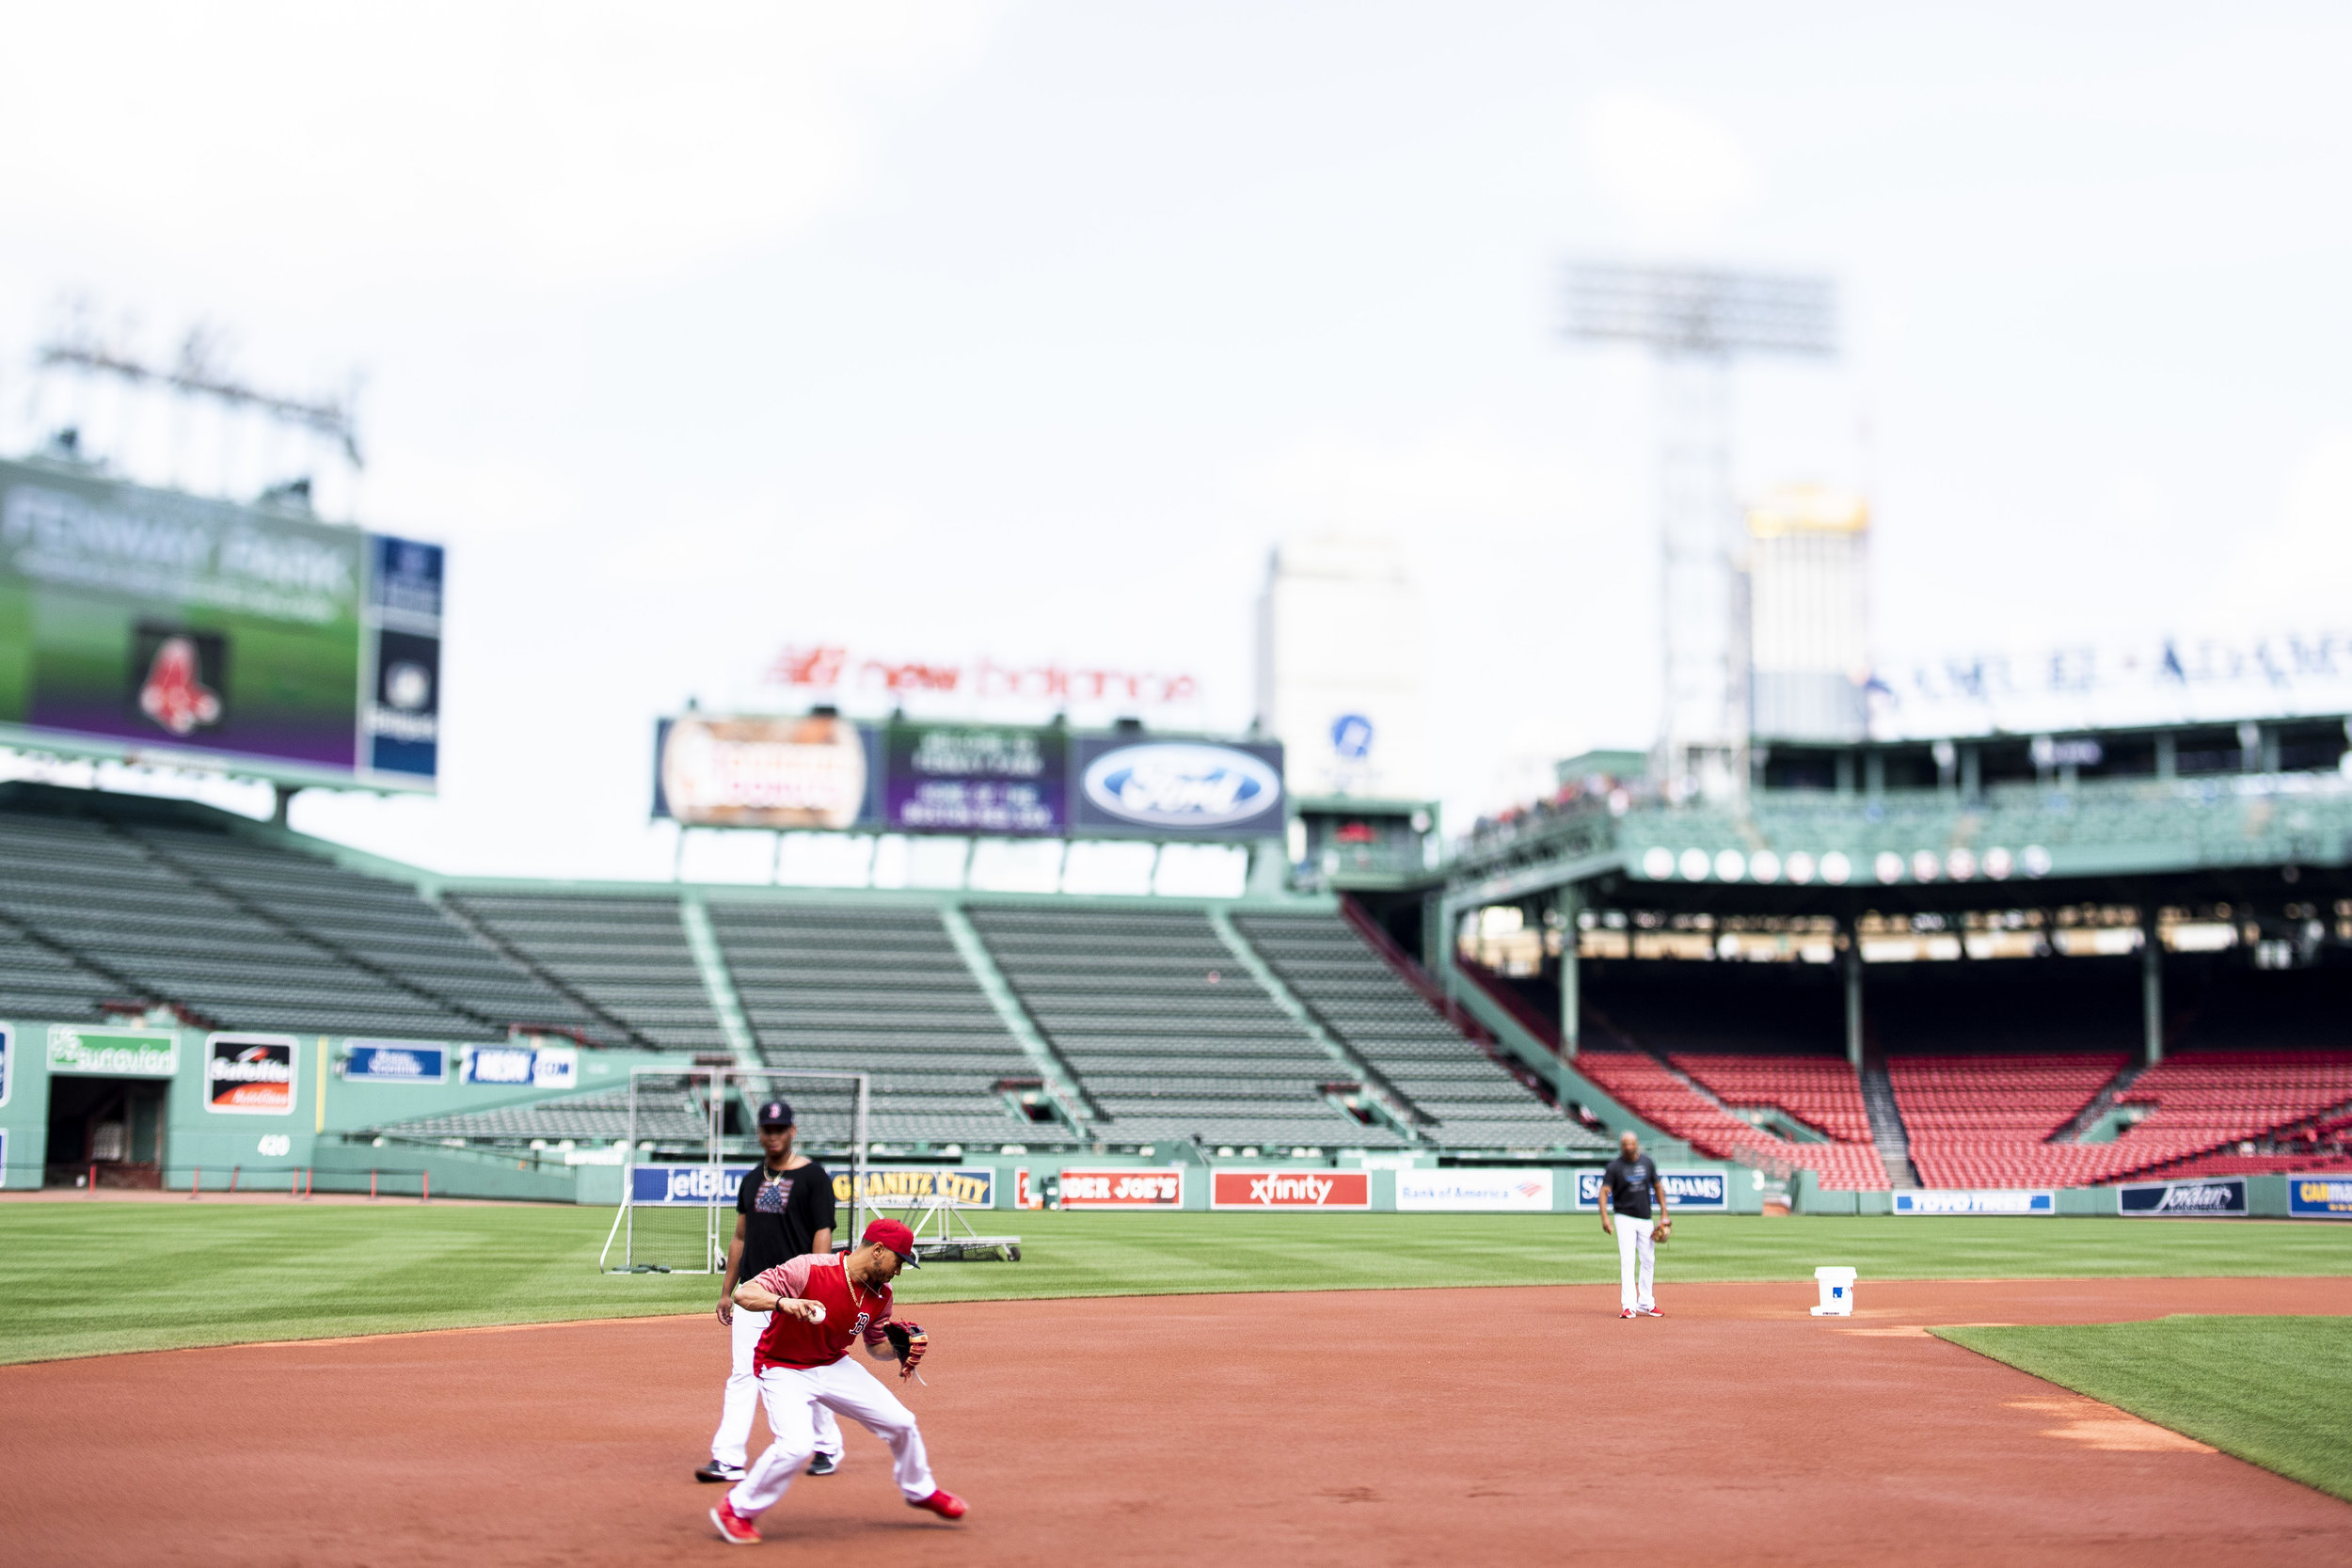 July 26, 2018, Boston, MA: Boston Red Sox outfielder Mookie Betts fields a ball at third base during warmups before the Boston Red Sox face the Minnesota Twins at Fenway Park in Boston, Massachusetts on Friday, July 27, 2018. (Photo by Matthew Thomas/Boston Red Sox)